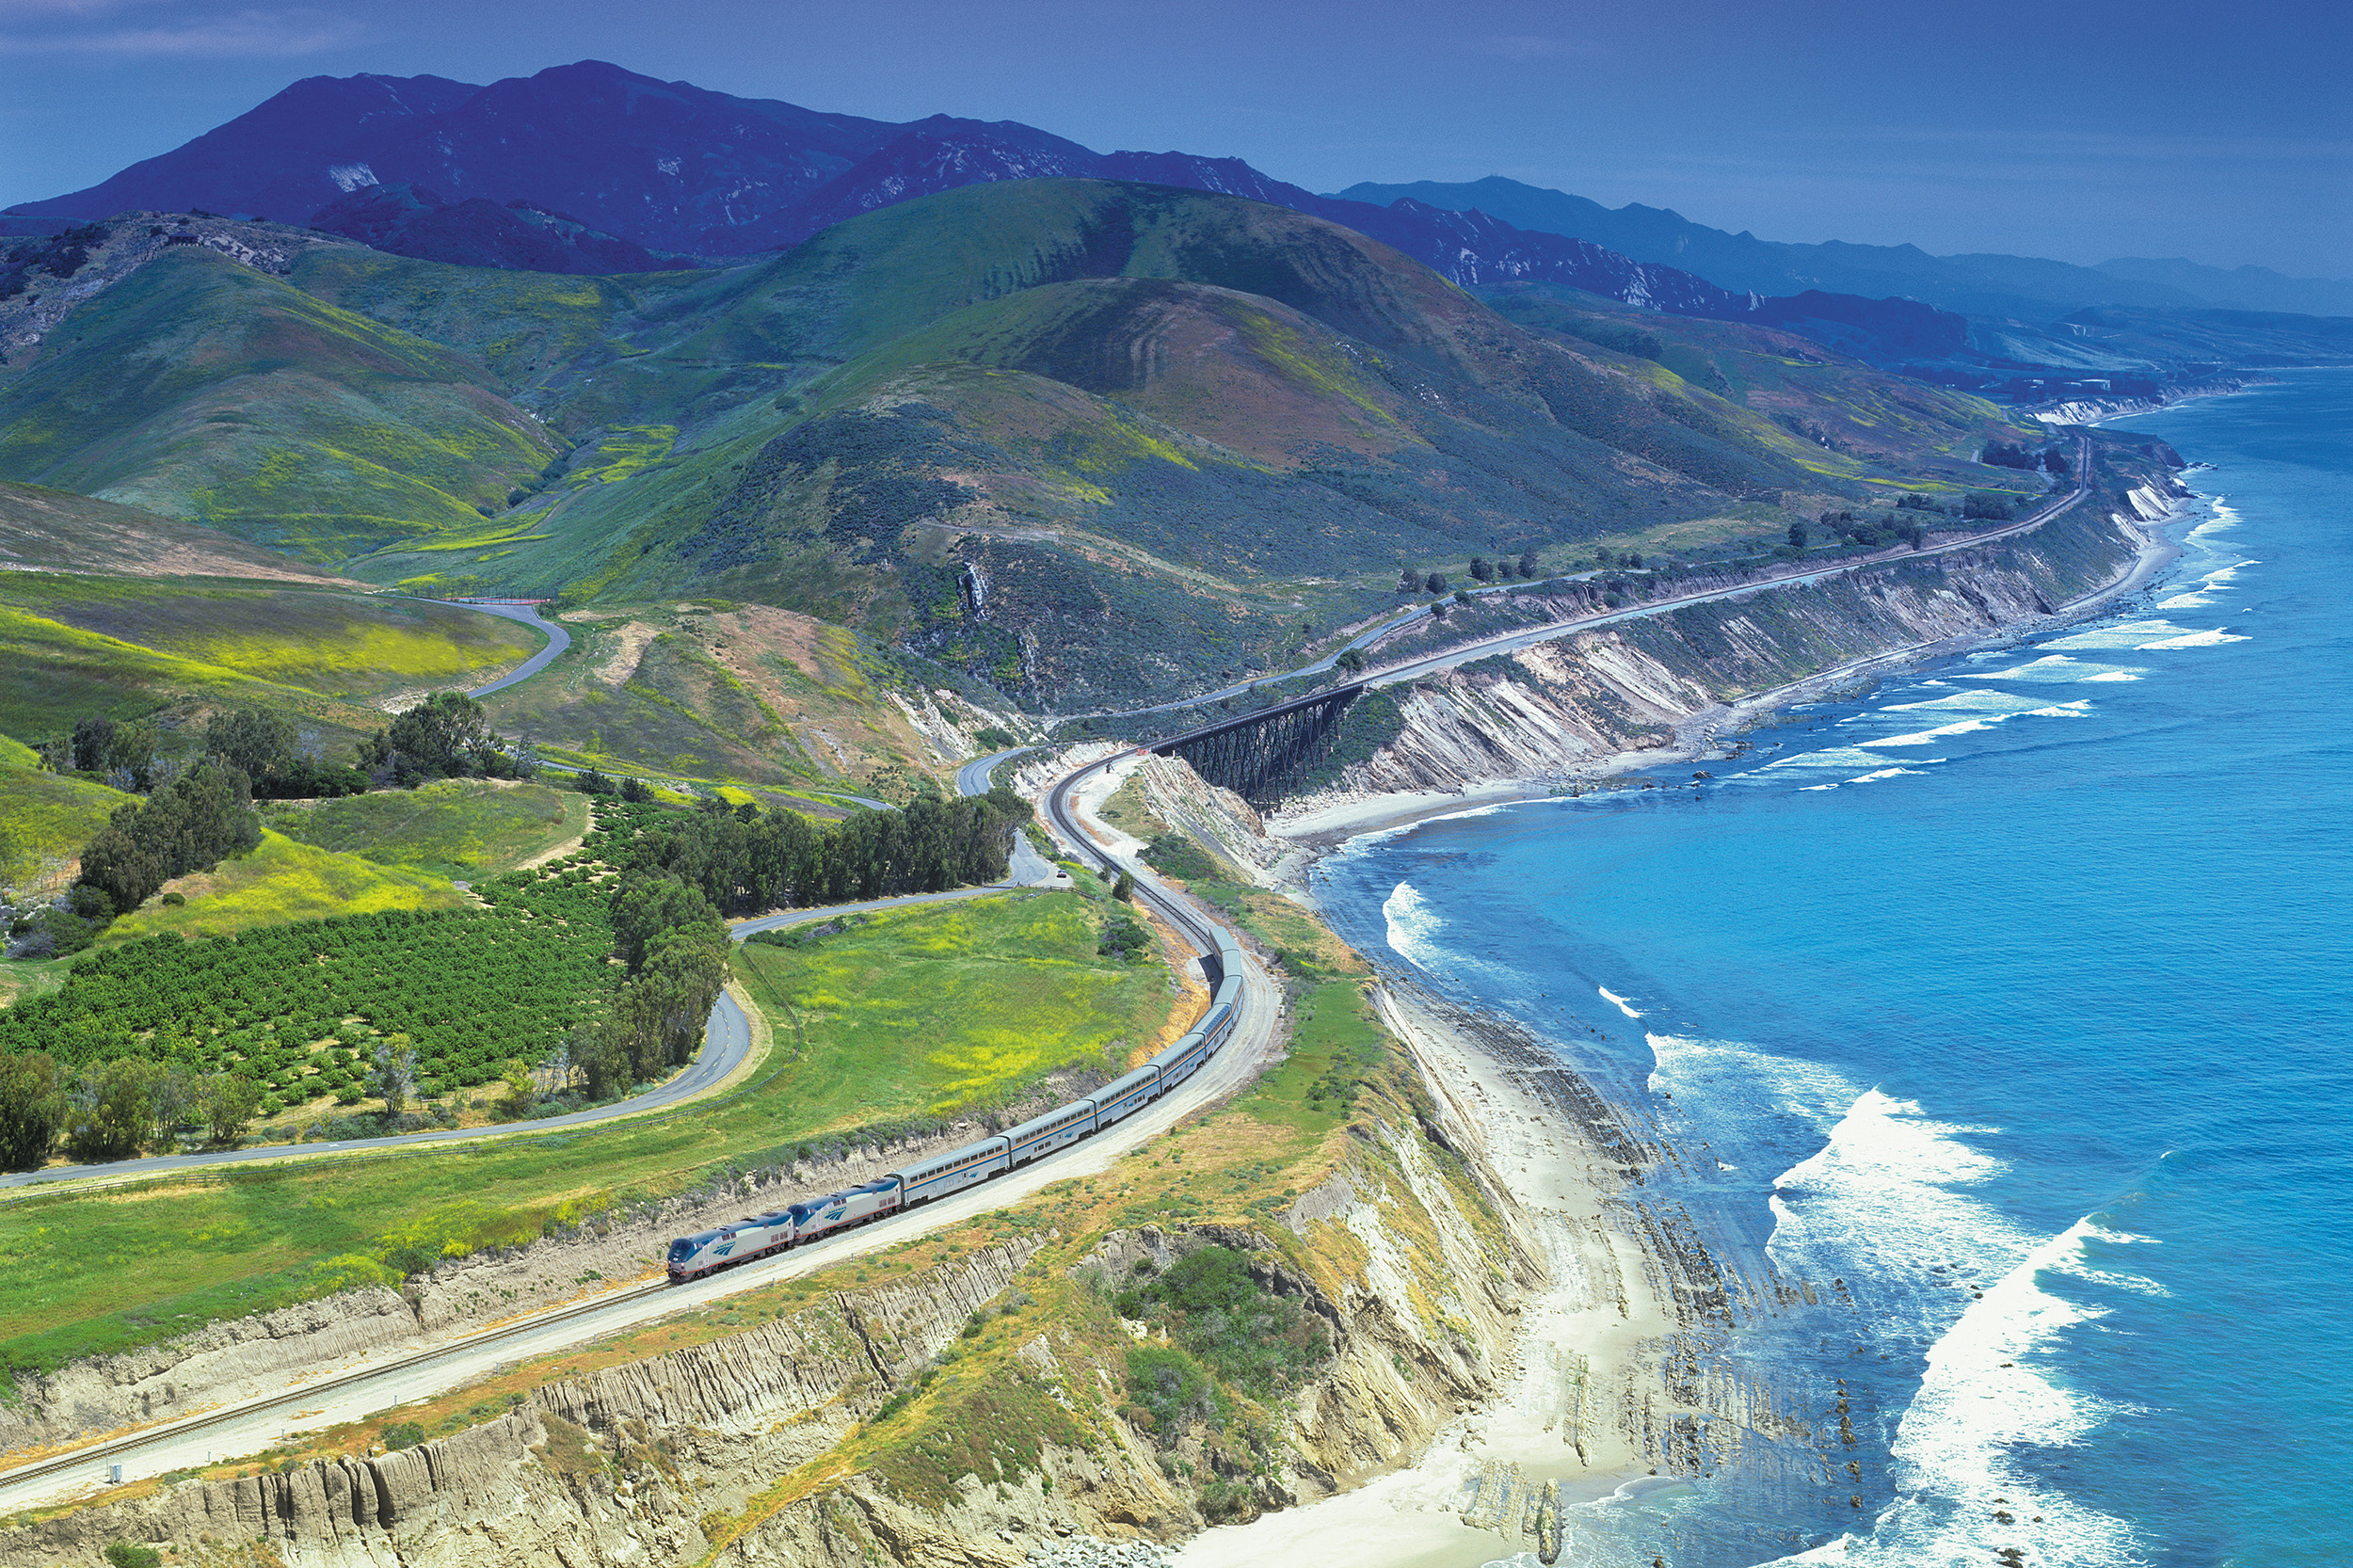 Coast Starlight Amtrak USA:s fem vackraste tågresor